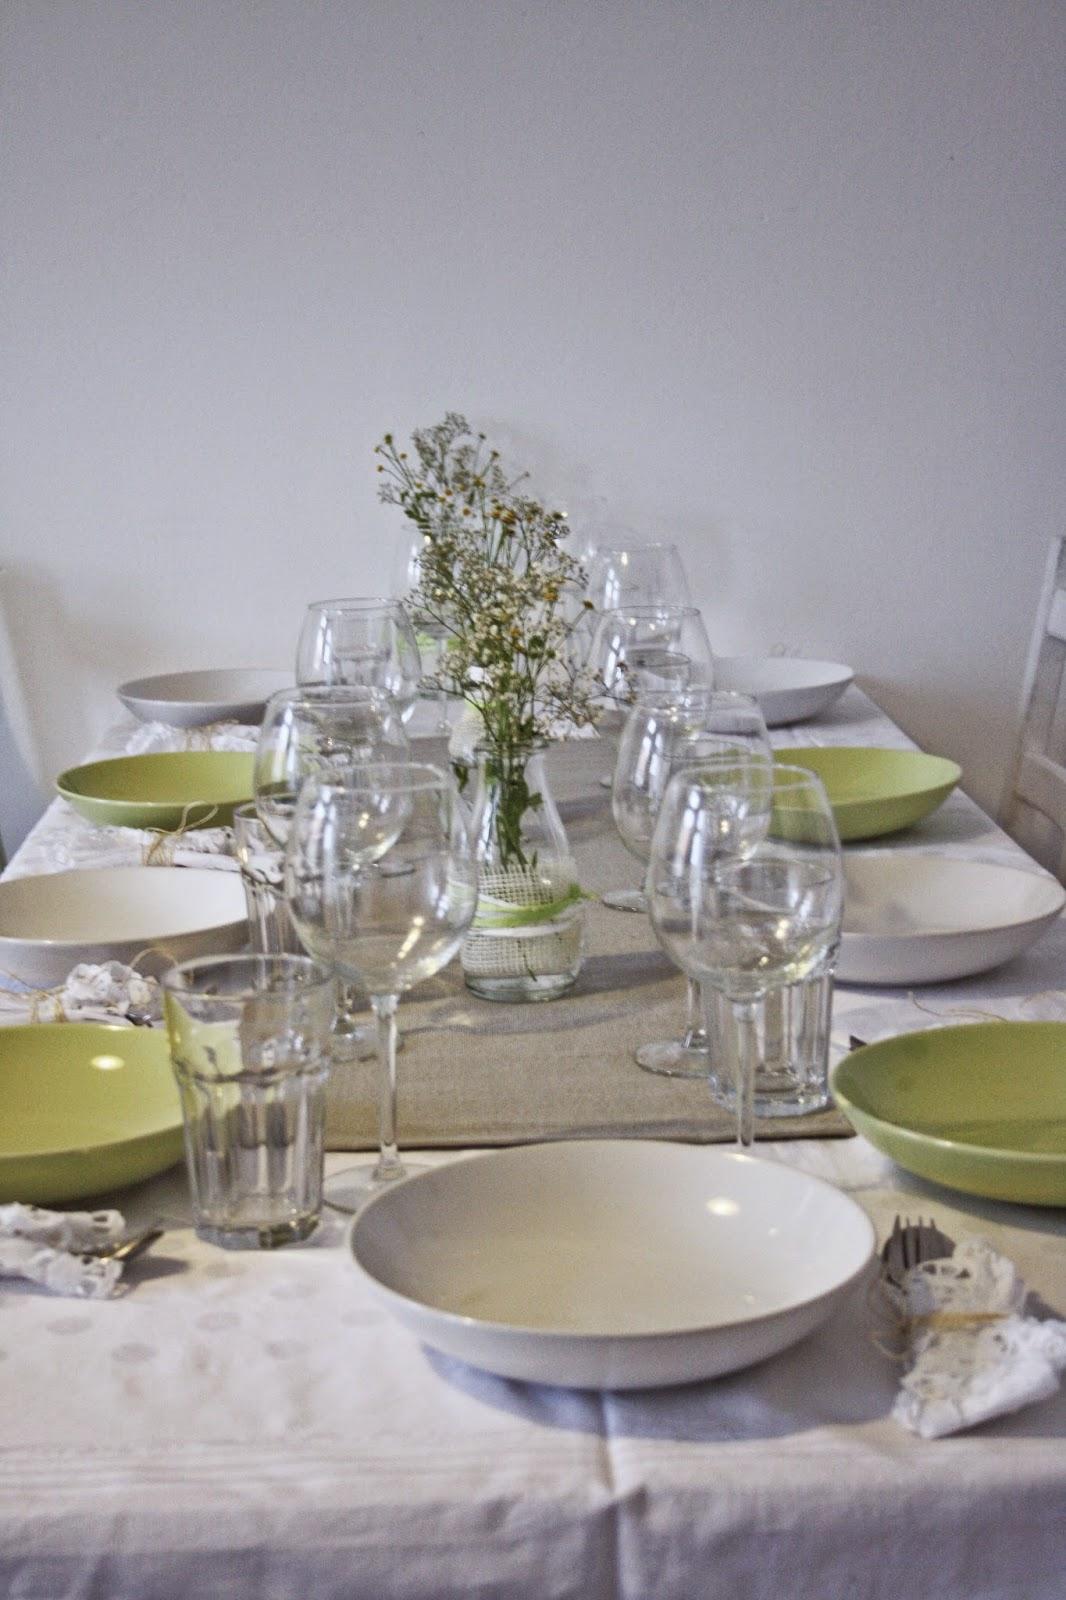 Fashionblog Deutschland Spring table setting